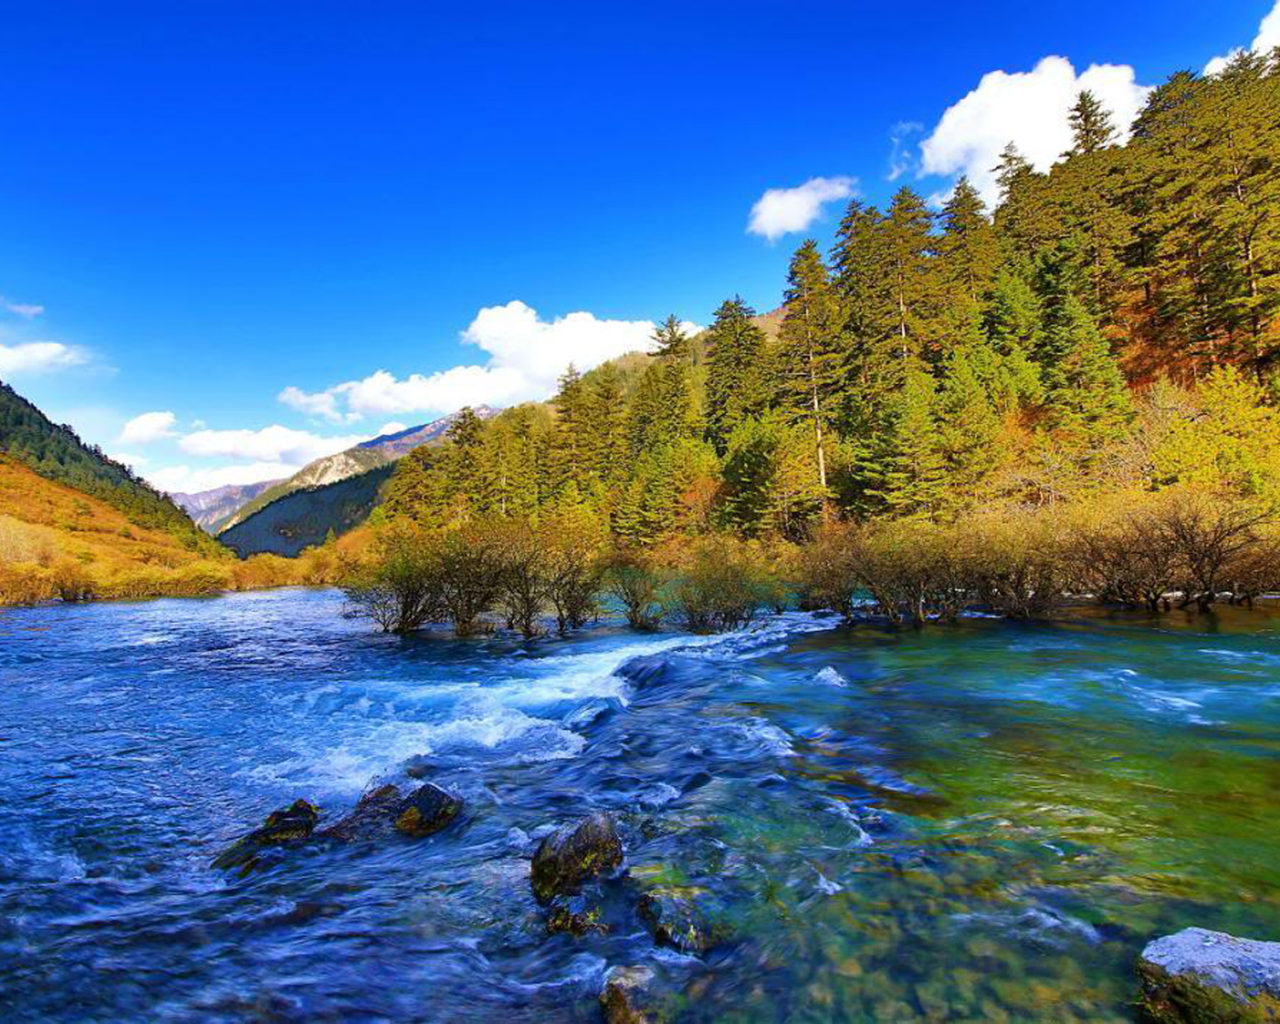 Fall Screen Wallpaper Jiuzhai Valley National Park Jiuzhaigou China Mountain